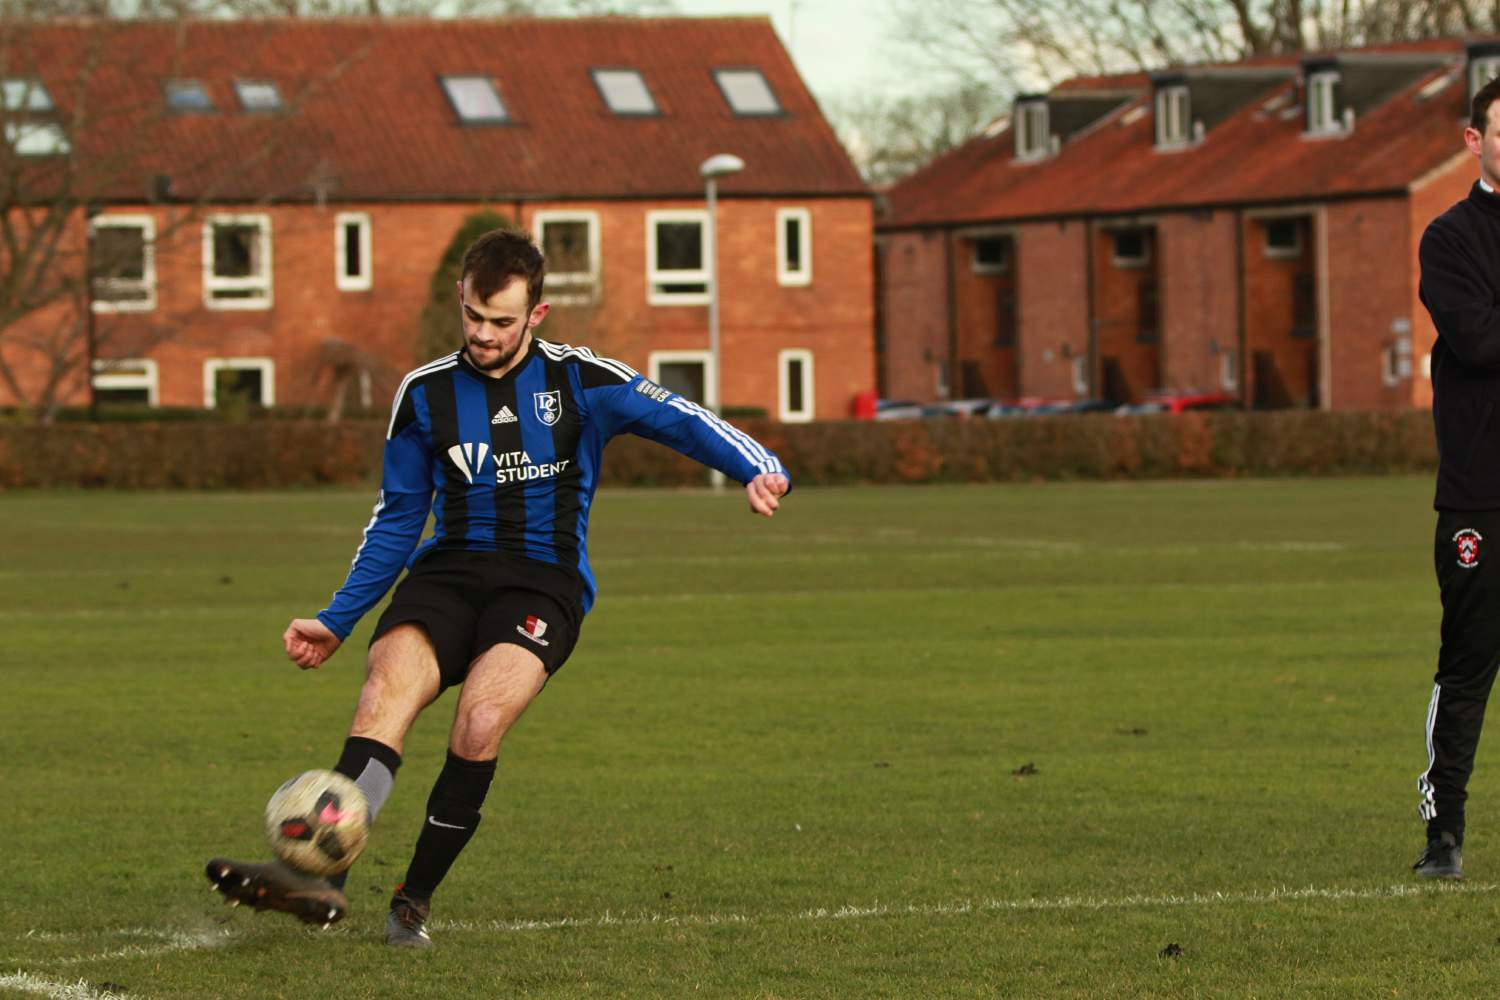 Derwent edged out in tight Men's Football A game